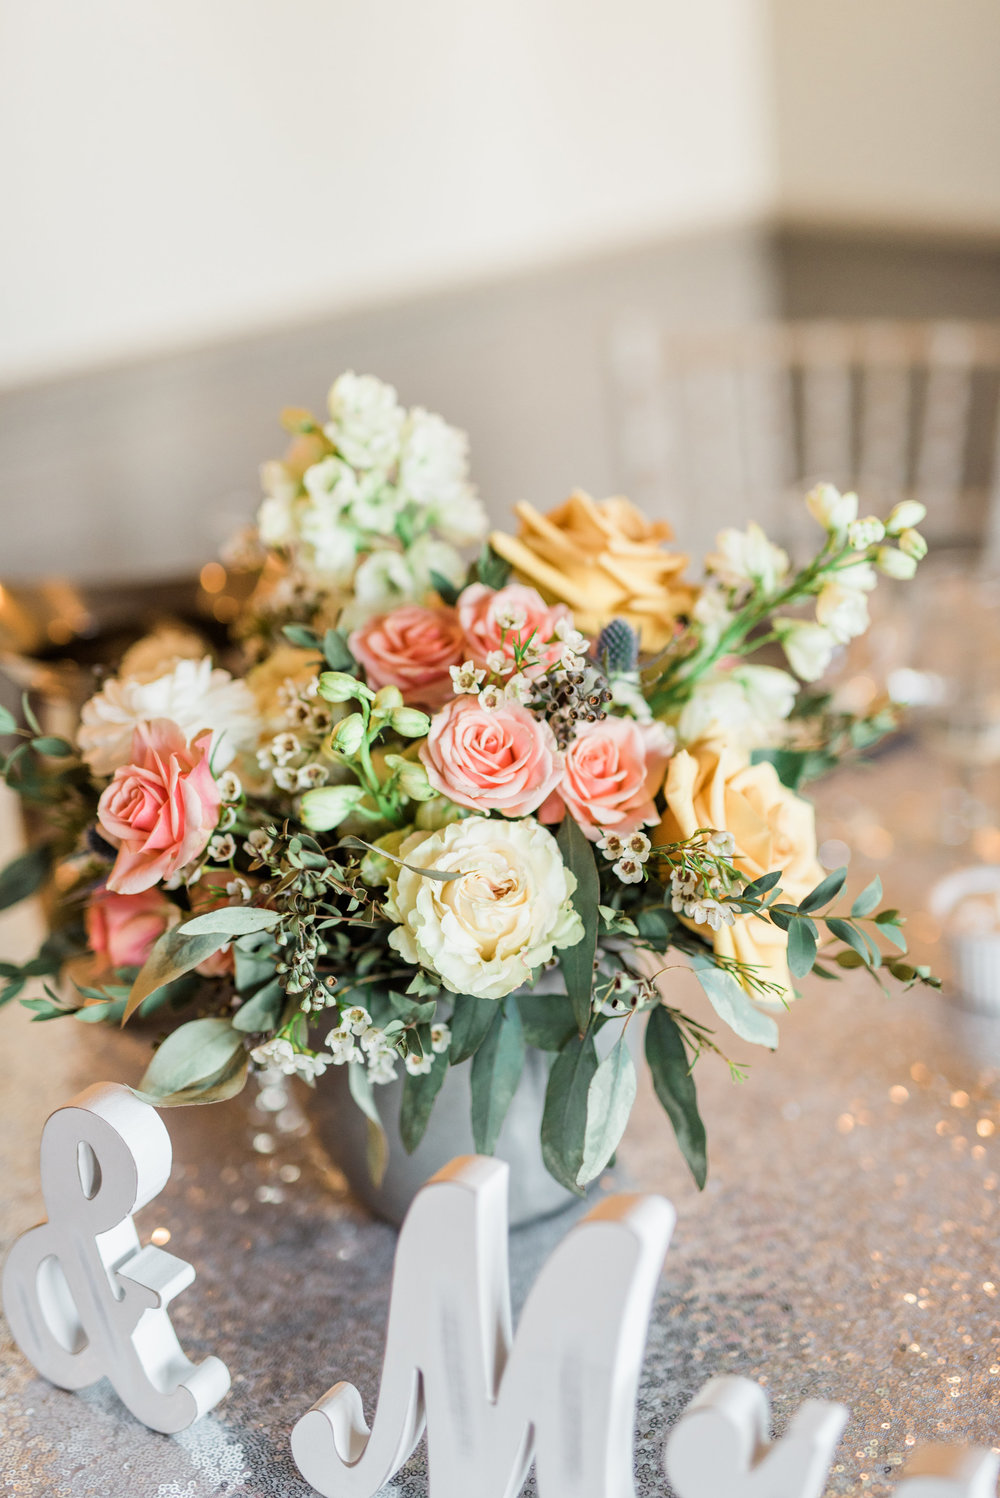 Boho Sedona Wedding - Centerpiece